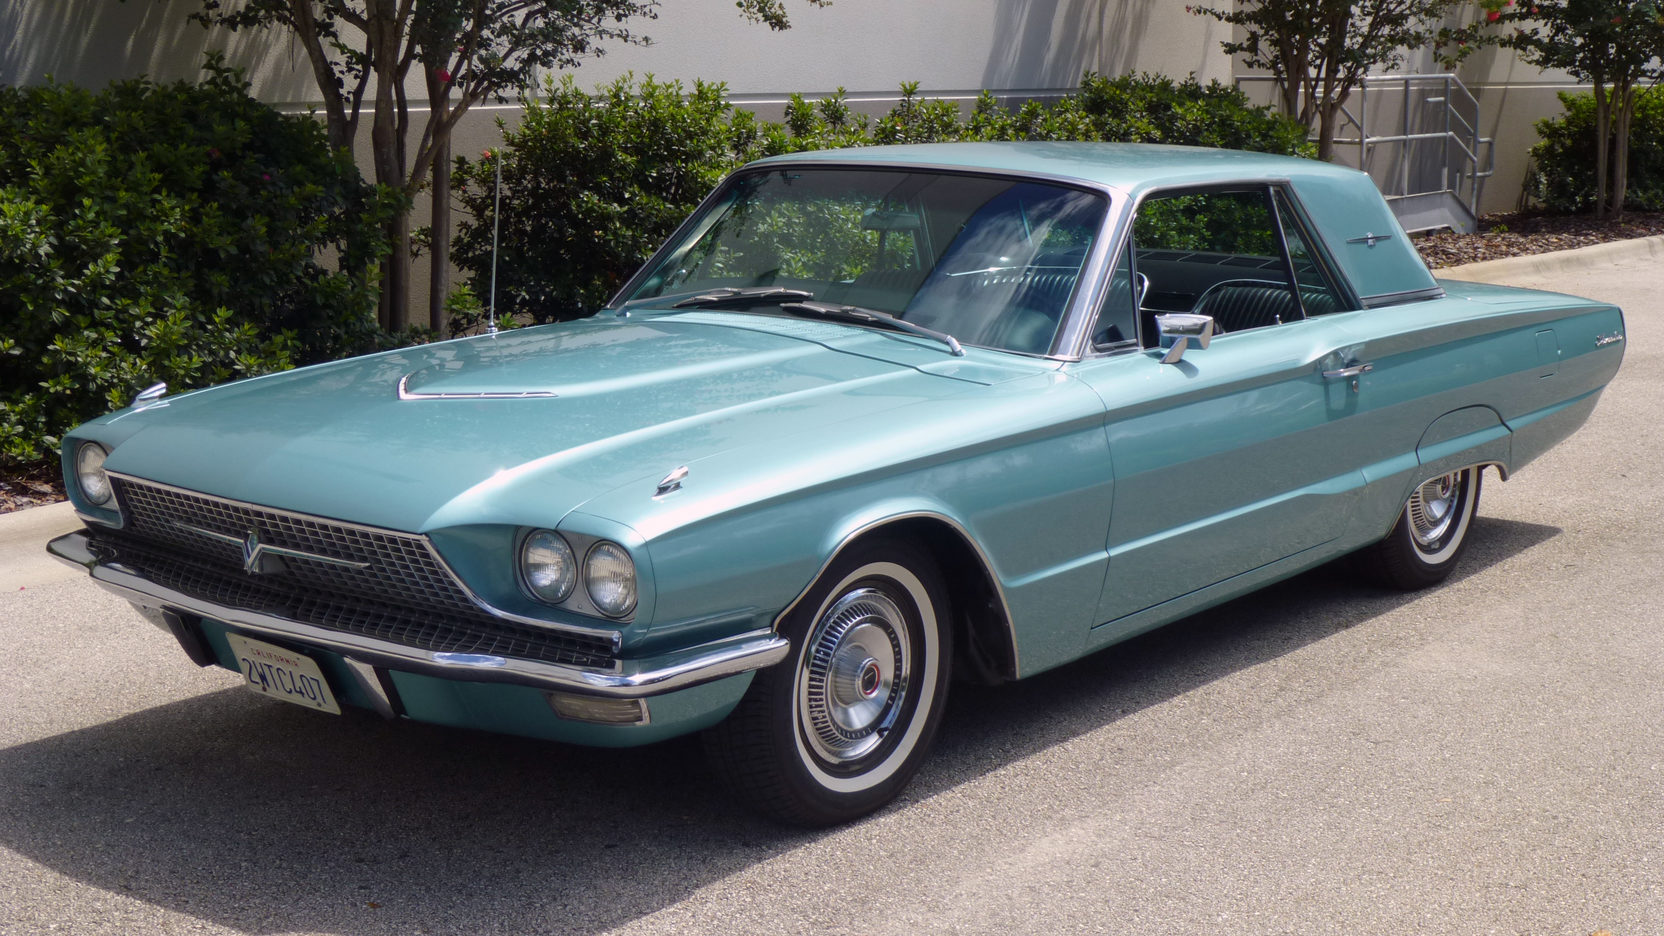 1966 Ford Thunderbird front 3/4